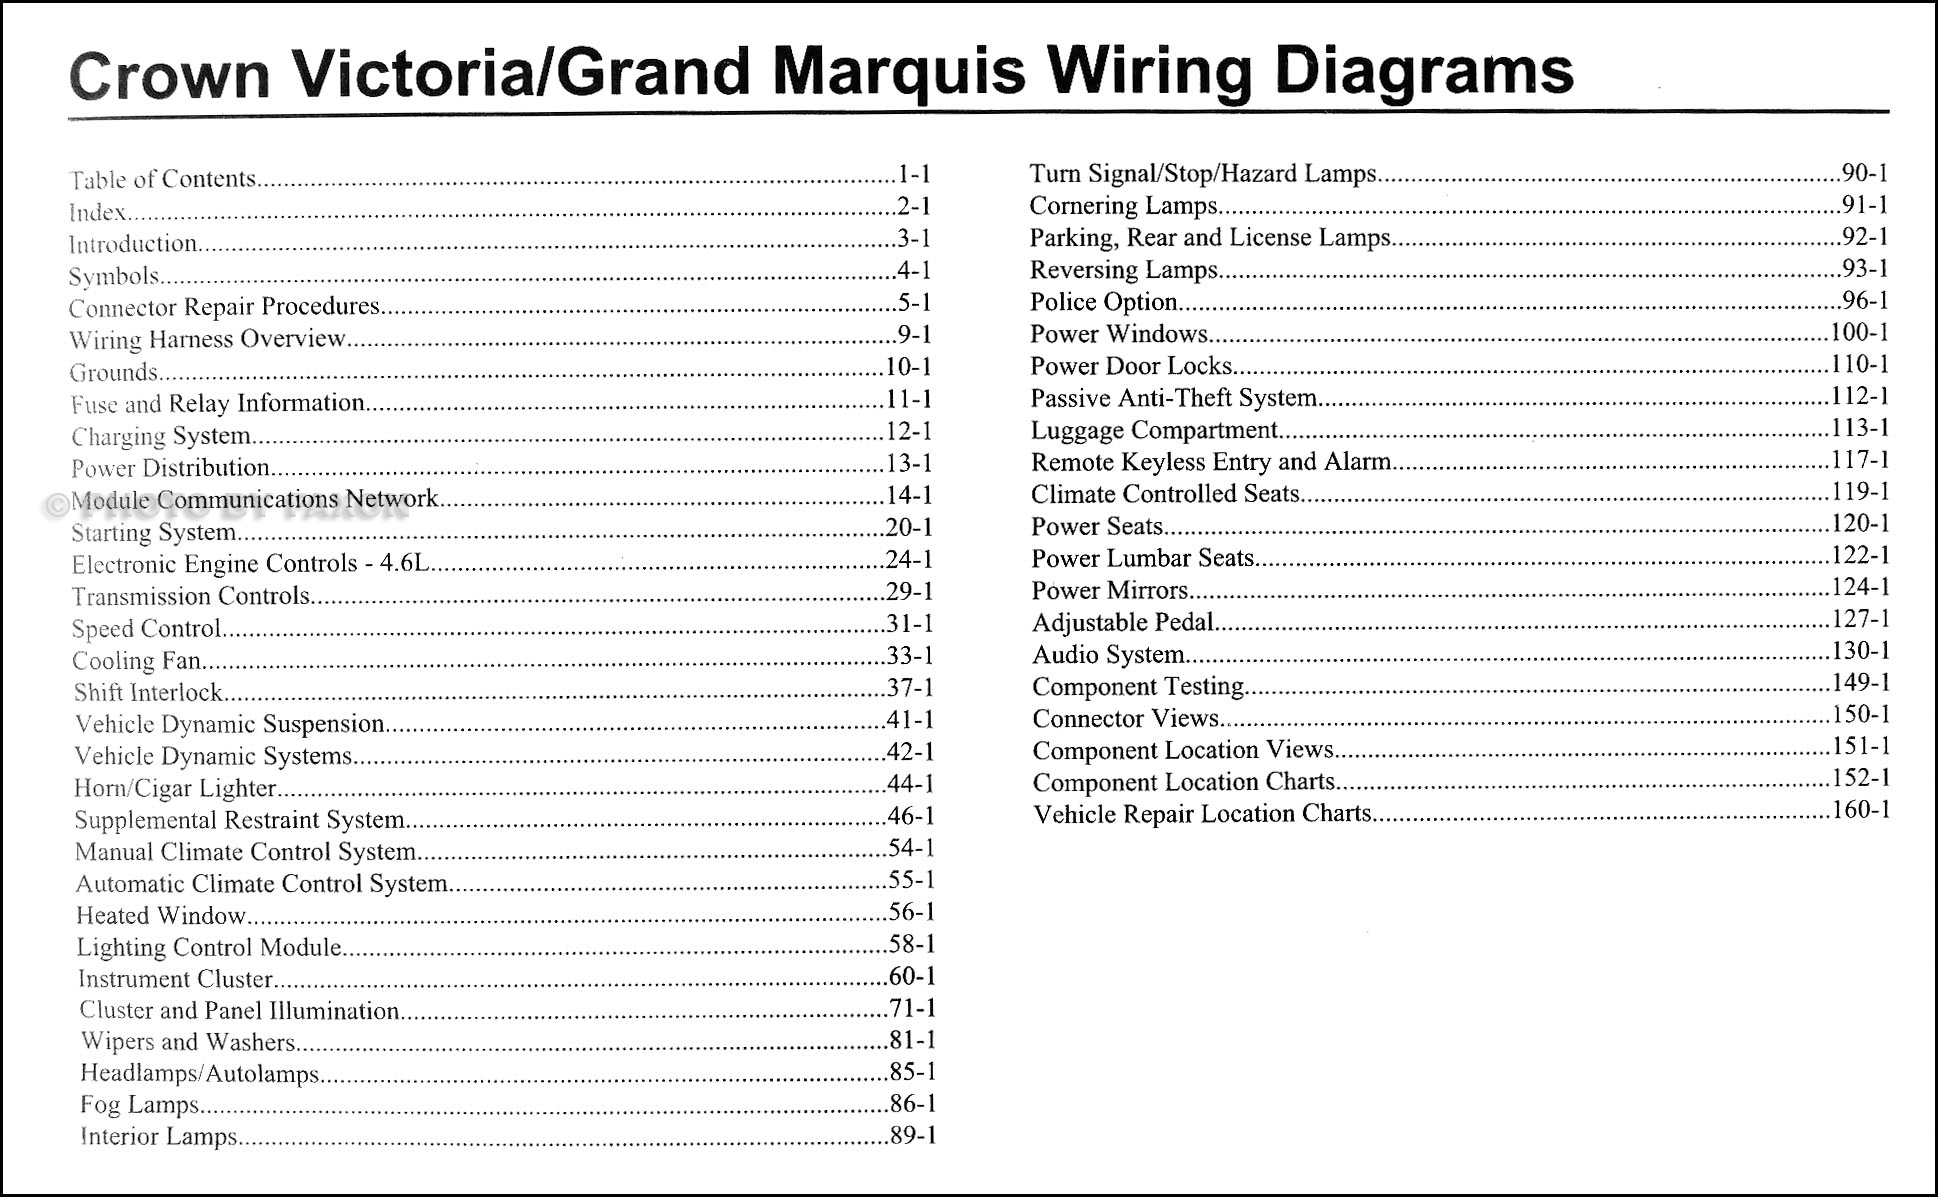 2009FordCrownVictoriaOWD TOC 98 grand marquis wiring diagram f450 wiring diagram \u2022 wiring wiring diagram for a 1999 ford crown victoria at readyjetset.co